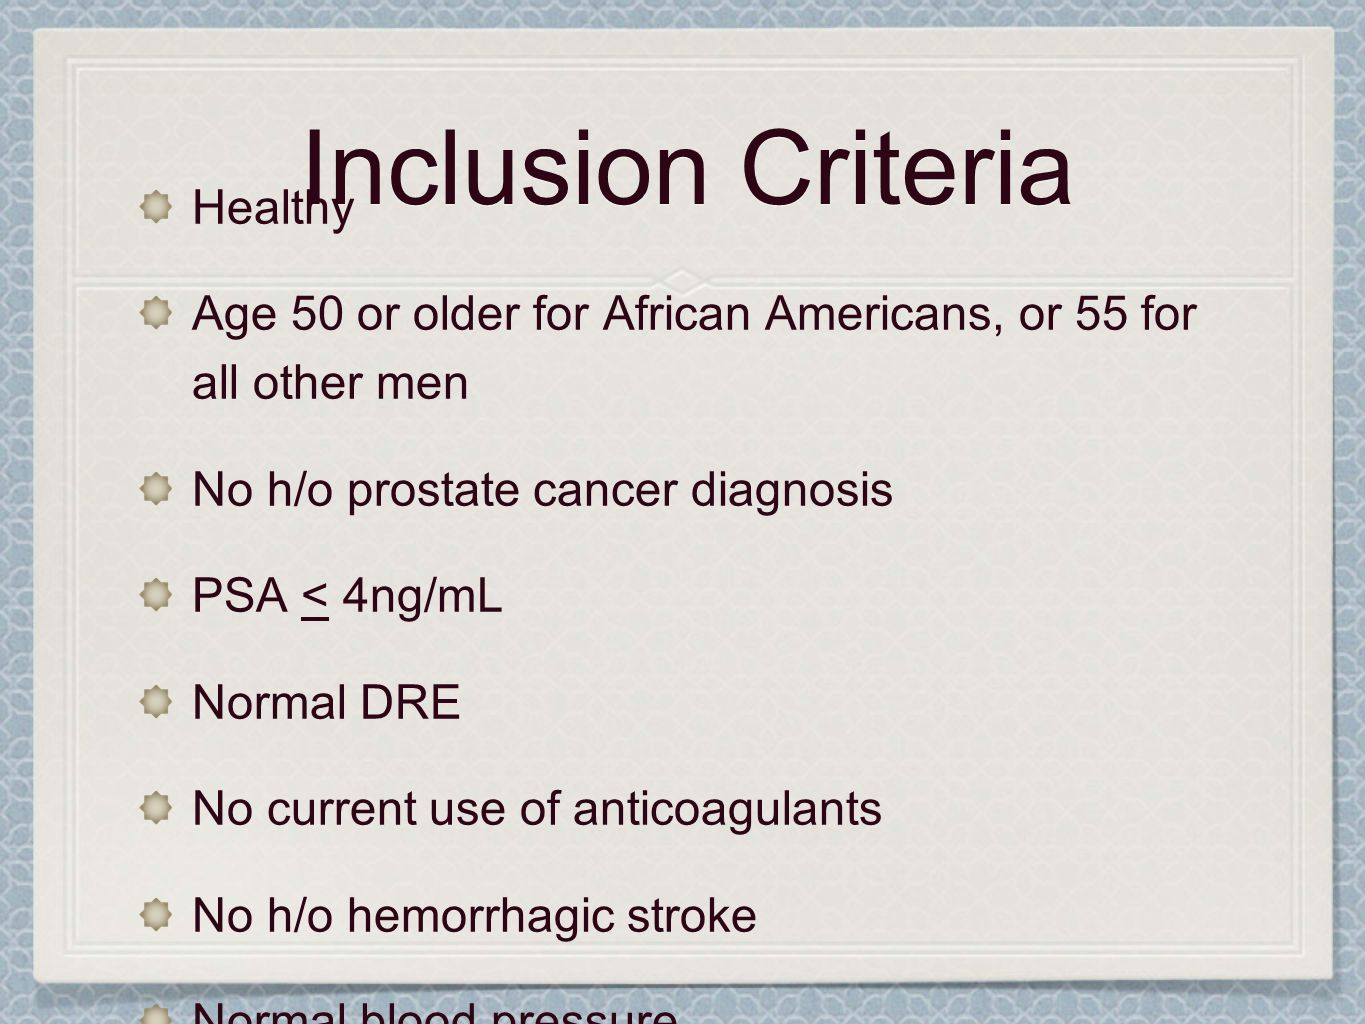 Inclusion Criteria Healthy Age 50 or older for African Americans, or 55 for all other men No h/o prostate cancer diagnosis PSA < 4ng/mL Normal DRE No